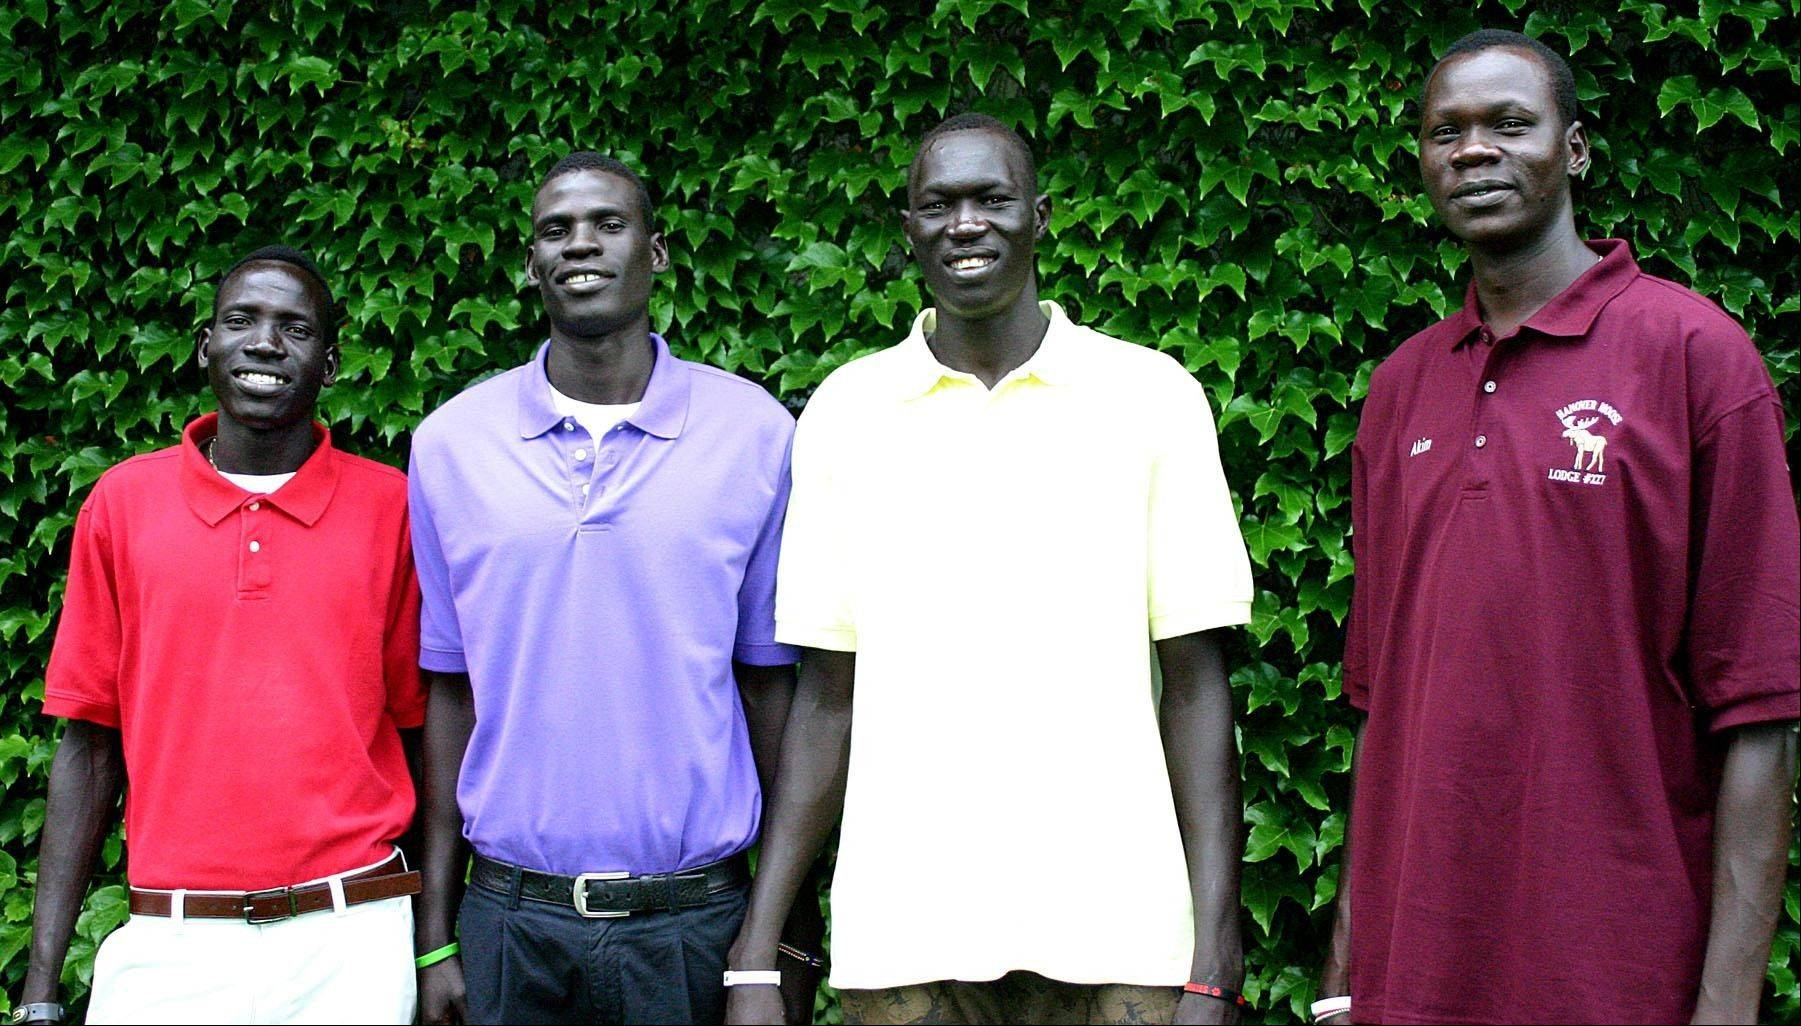 Four students from South Sudan are attending Mooseheart High School this year, including, from left, Wal Khat, Mangisto Deng, Makur Puou and Akim Nyang.